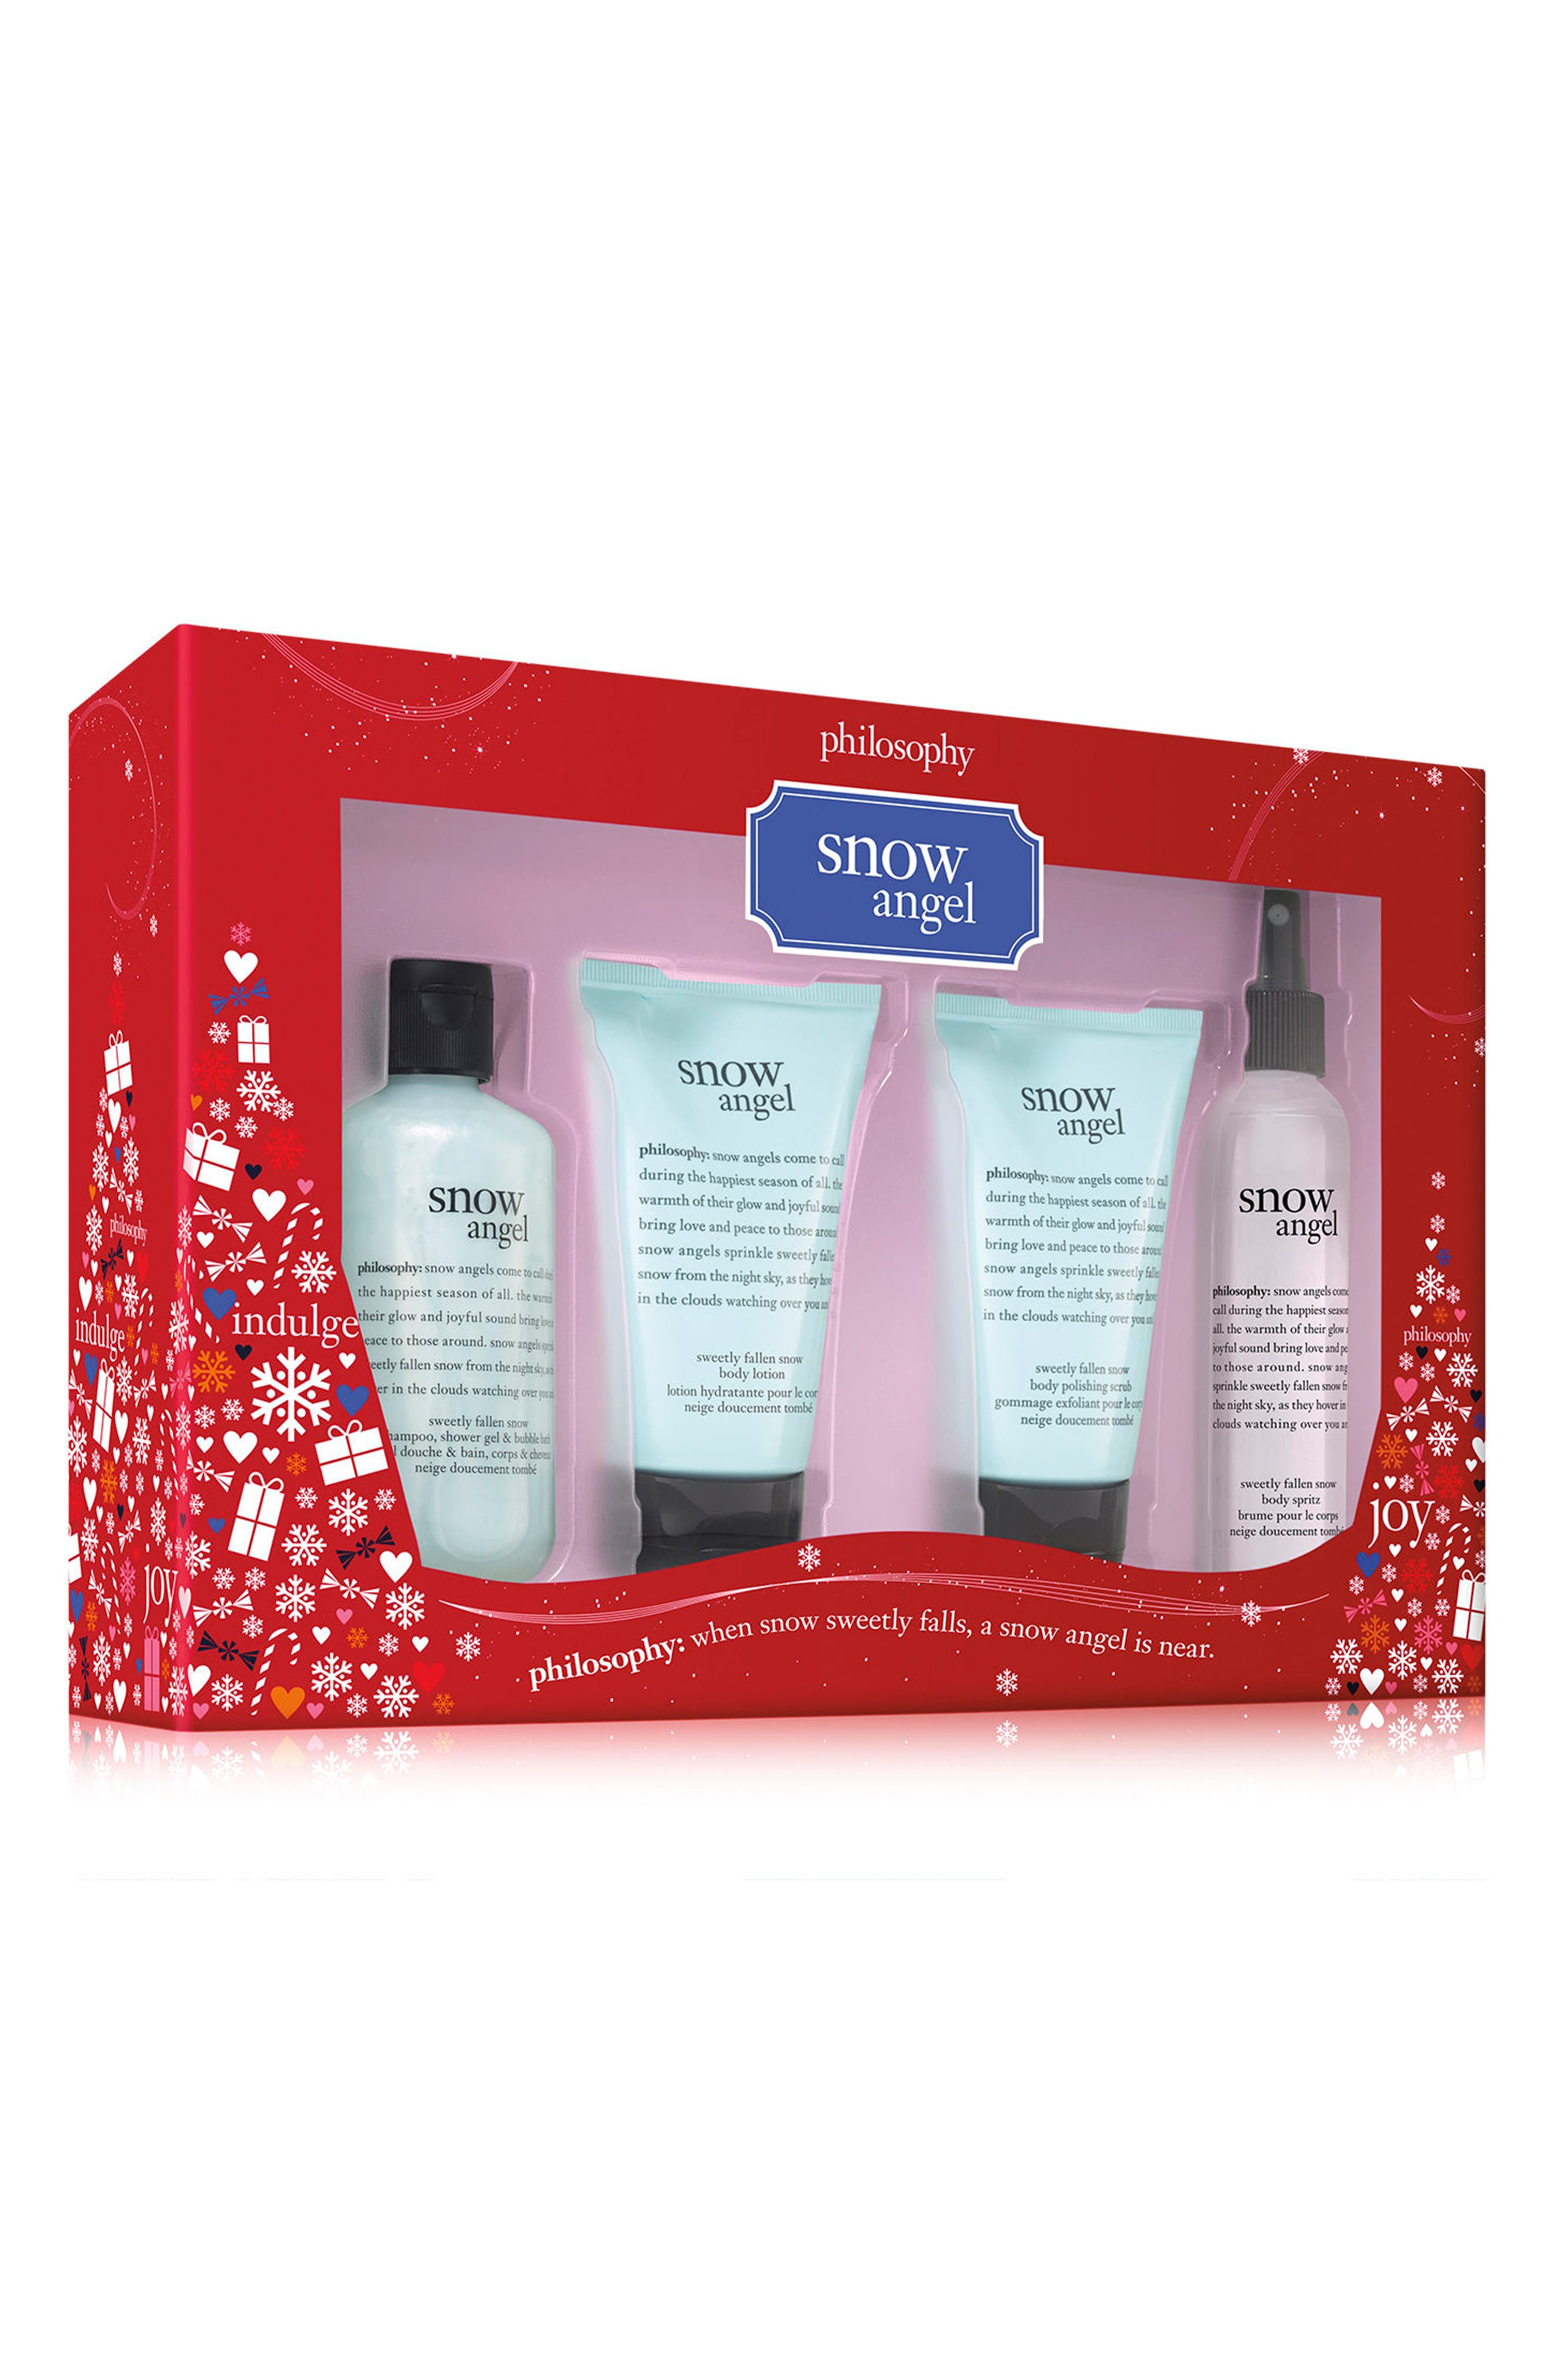 philosophy snow angel 4-piece set (Limited Edition)